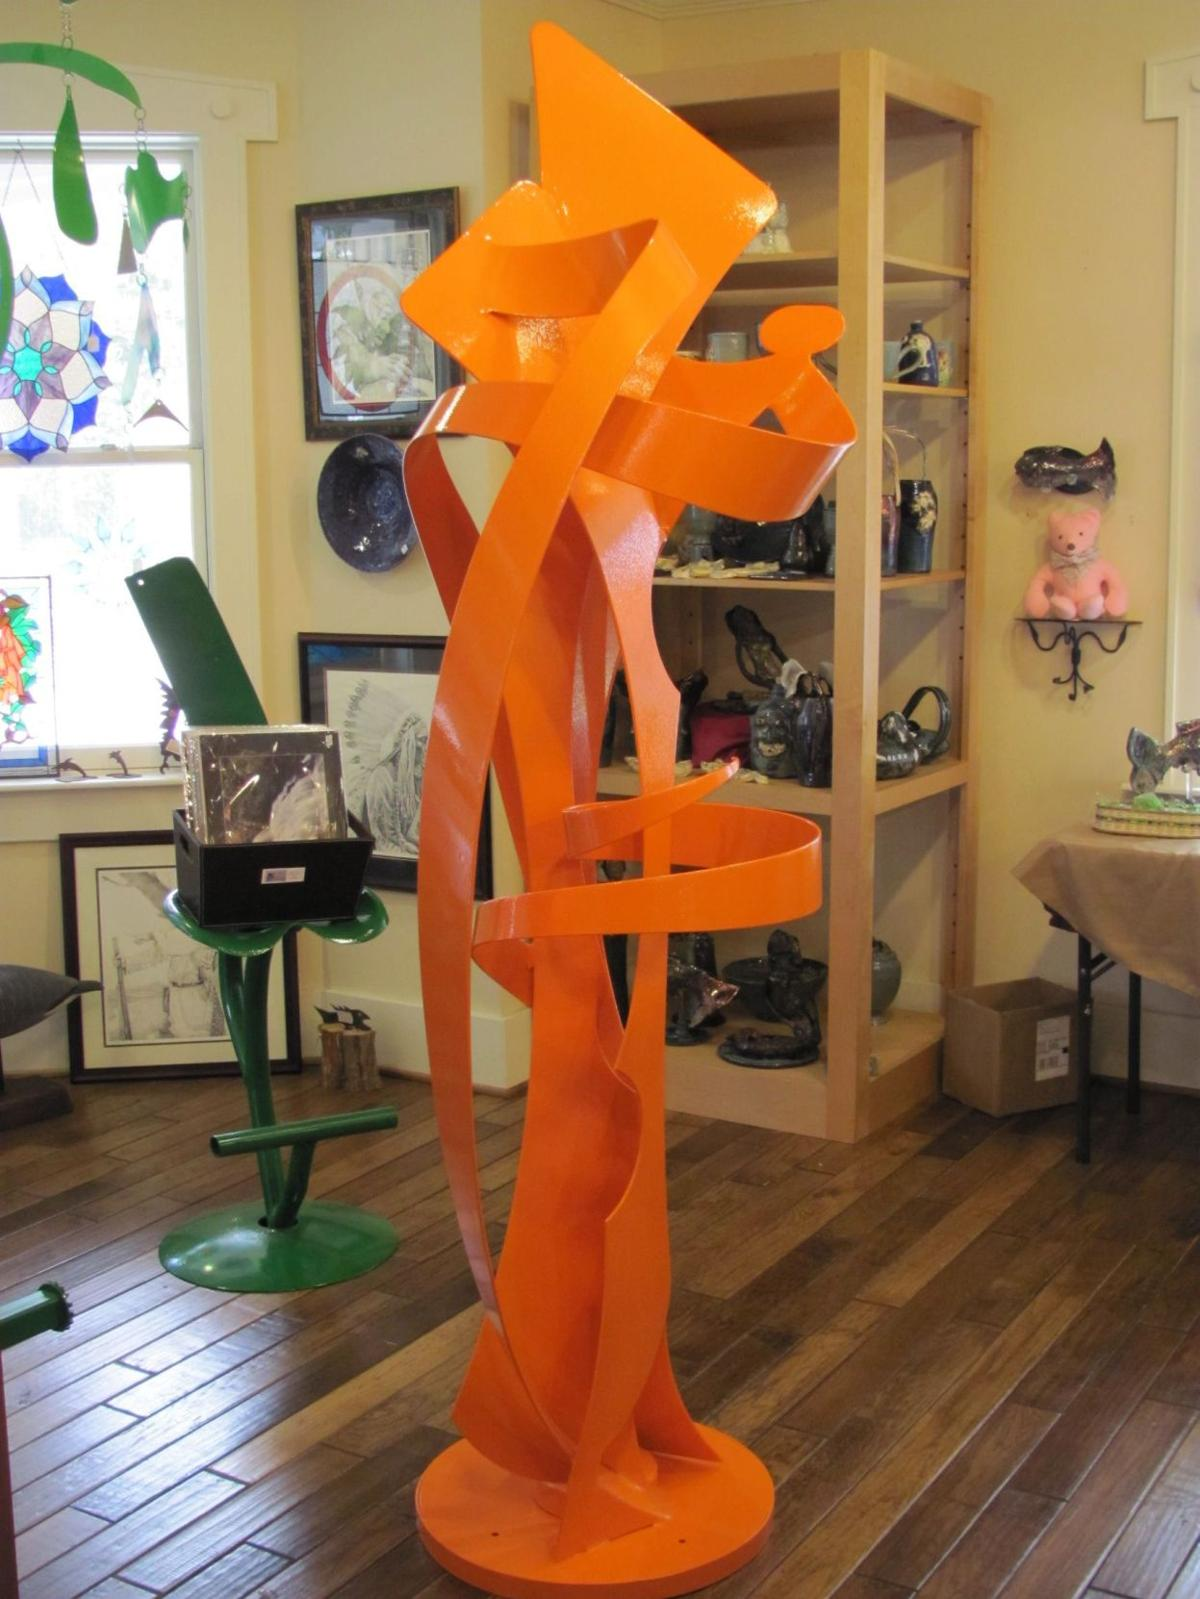 Arts, antiques at heart of town's revitalization